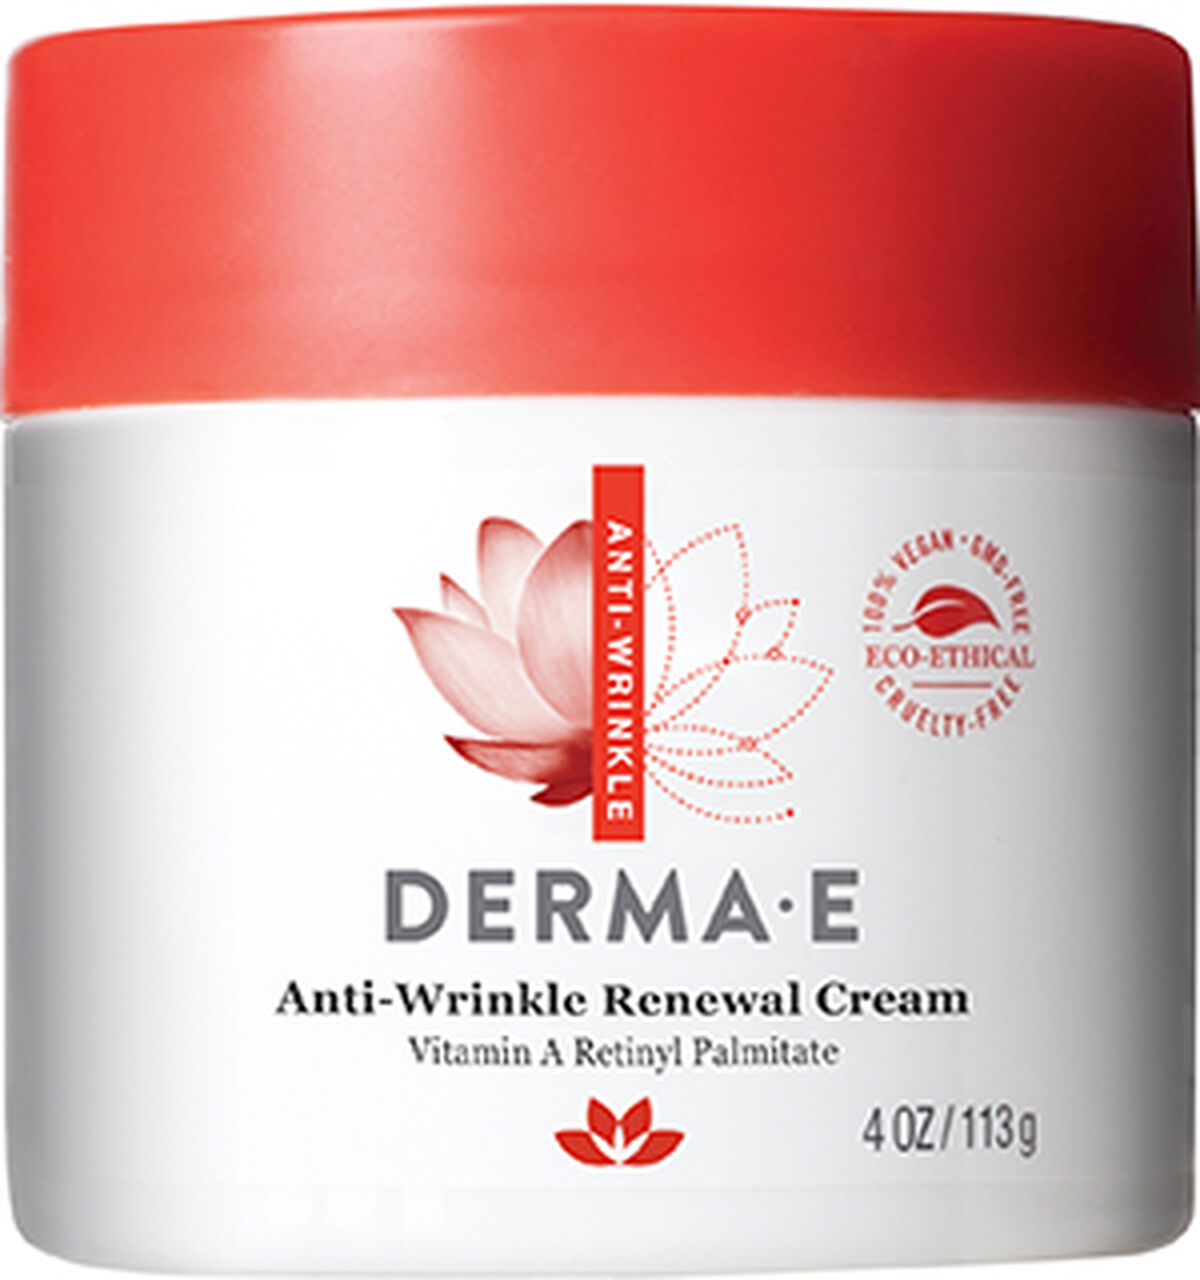 Derma E® Anti-Wrinkle Renewal Cream | Face Cream | Vitamin World | Tuggl